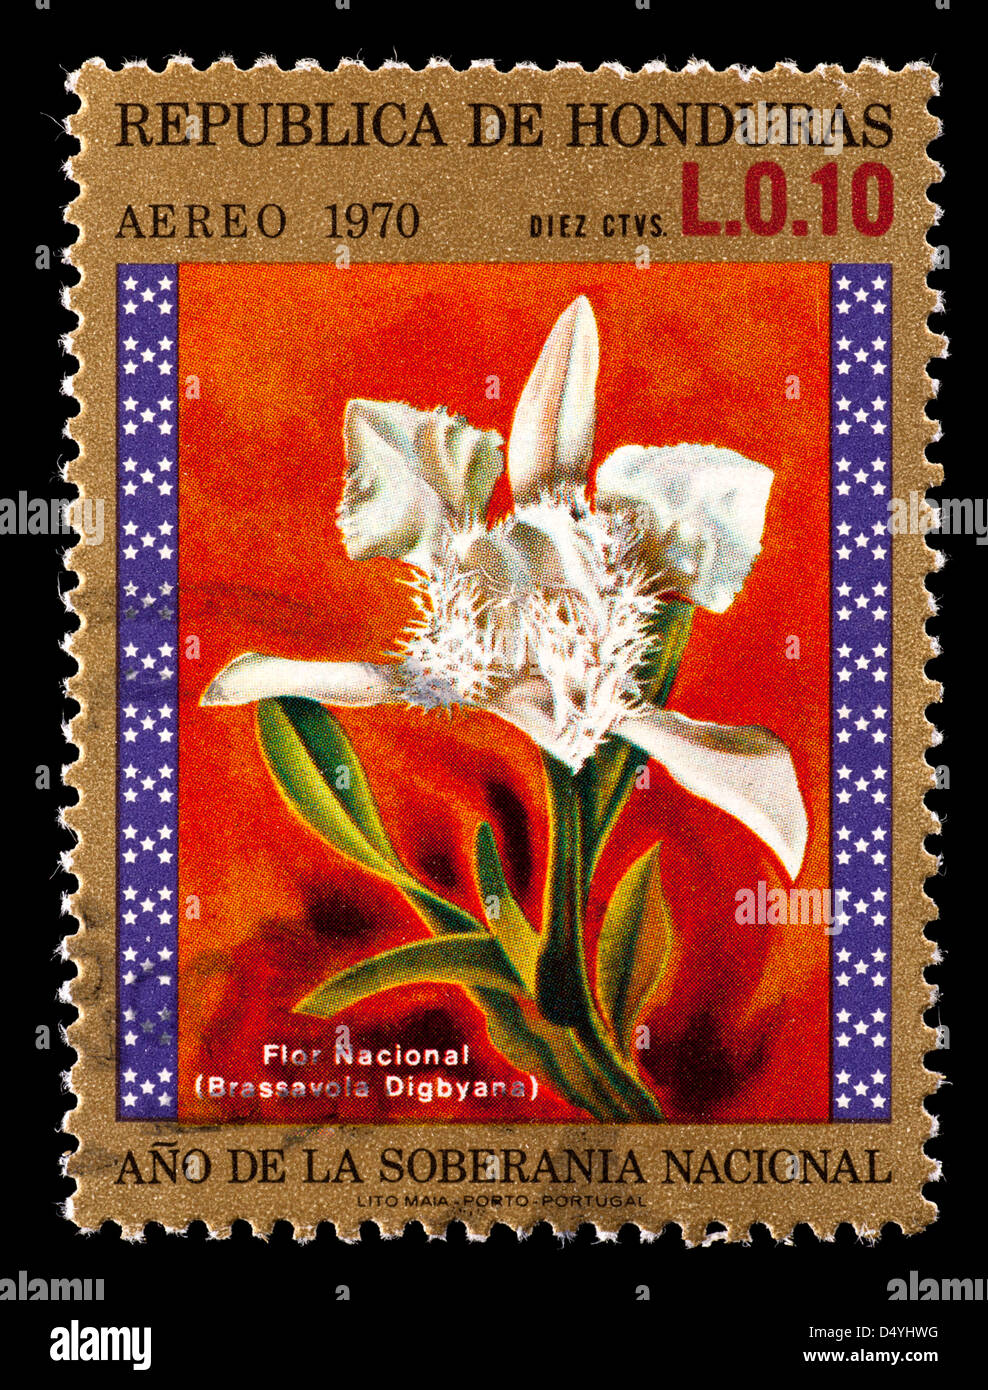 National Flower Of Portugal : national, flower, portugal, Postage, Stamp, Honduras, Depicting, National, Flower,, Orchid, Stock, Photo, Alamy